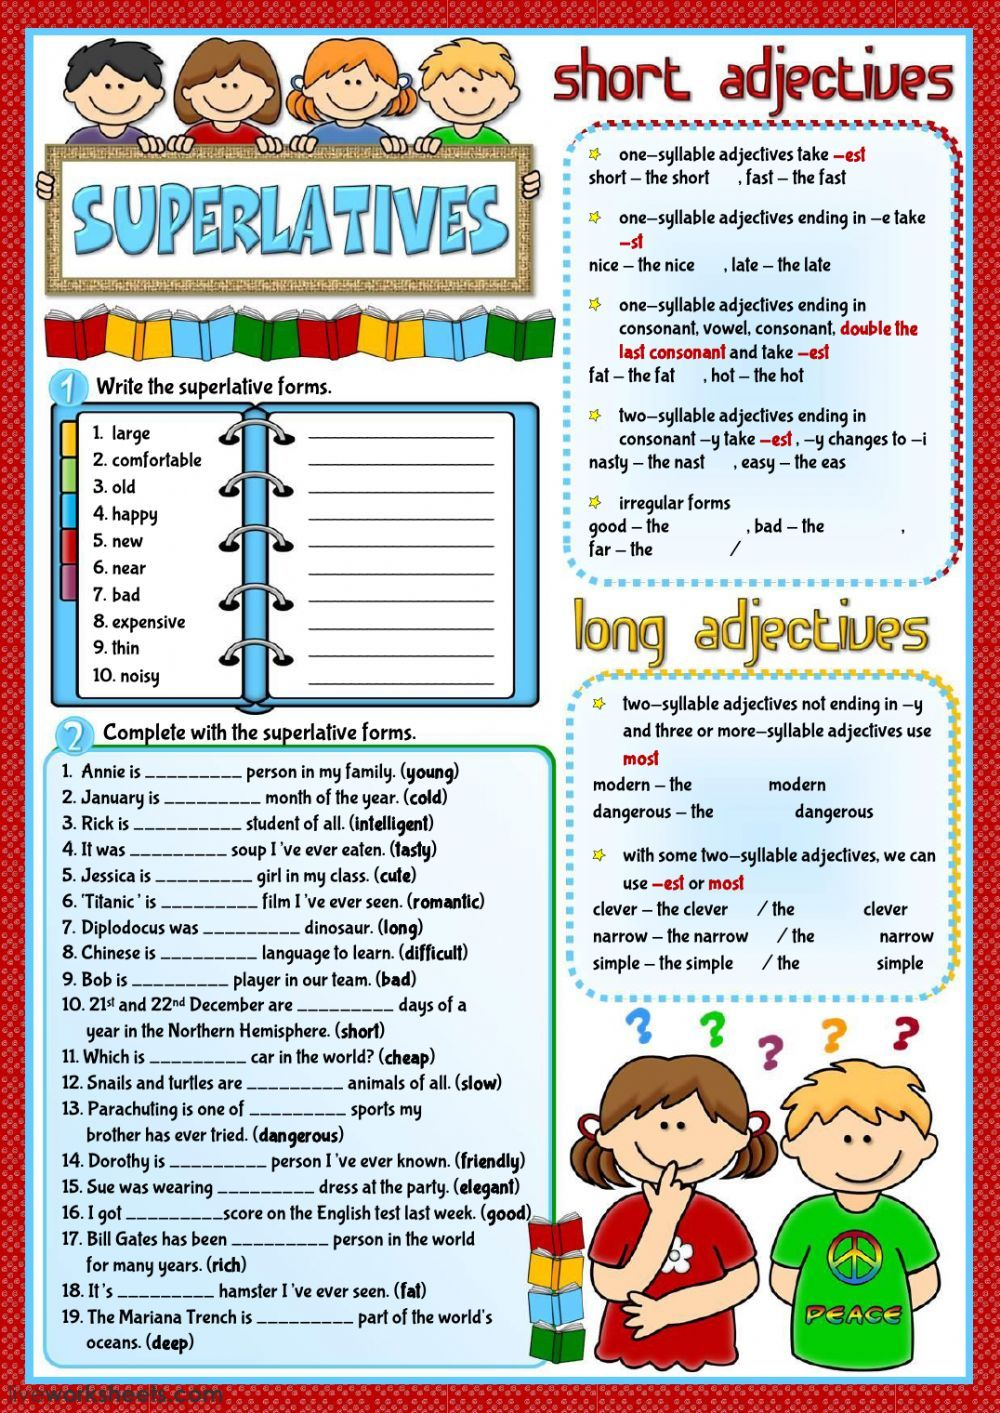 superlatives interactive and downloadable worksheet. You